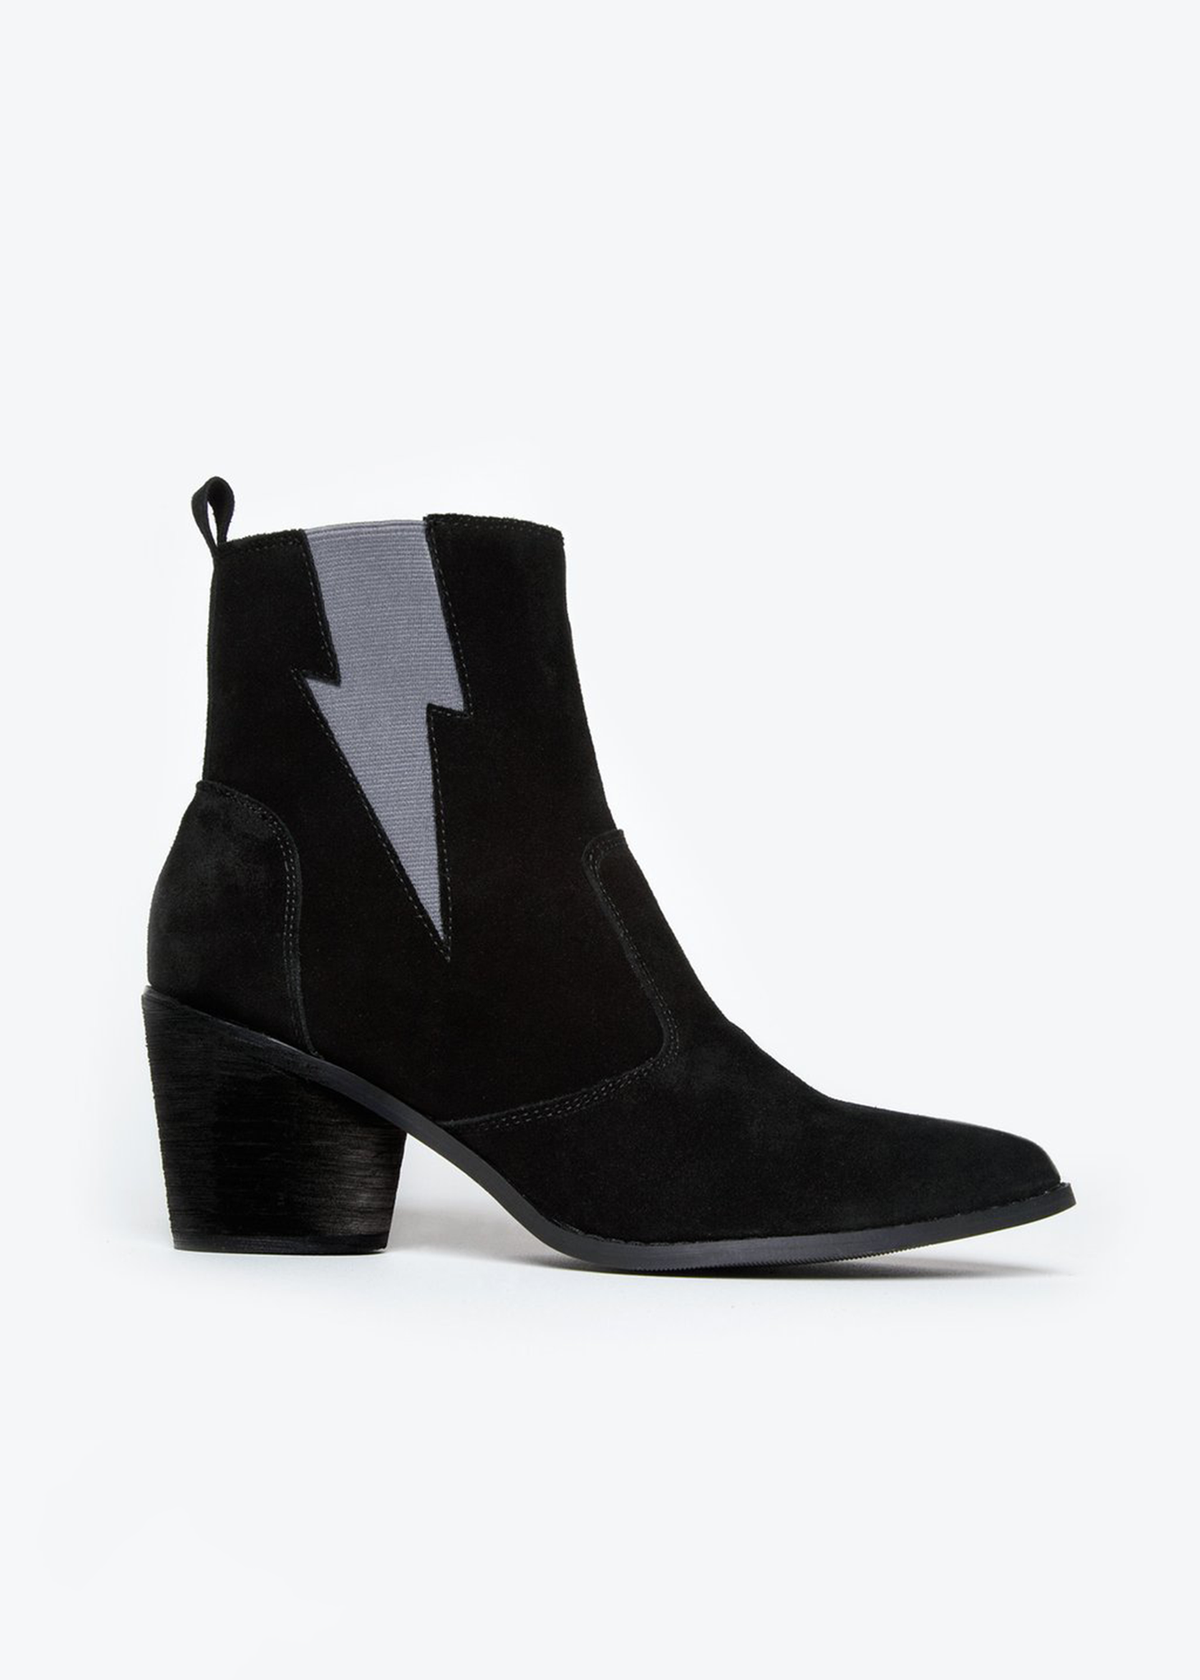 6ee1a64c8 The perfect black LIGHTING BOLT boots. Pair them with a white sweater and  black jeans. - Black suede ankle boot. - Lightning bolt stretch detail.